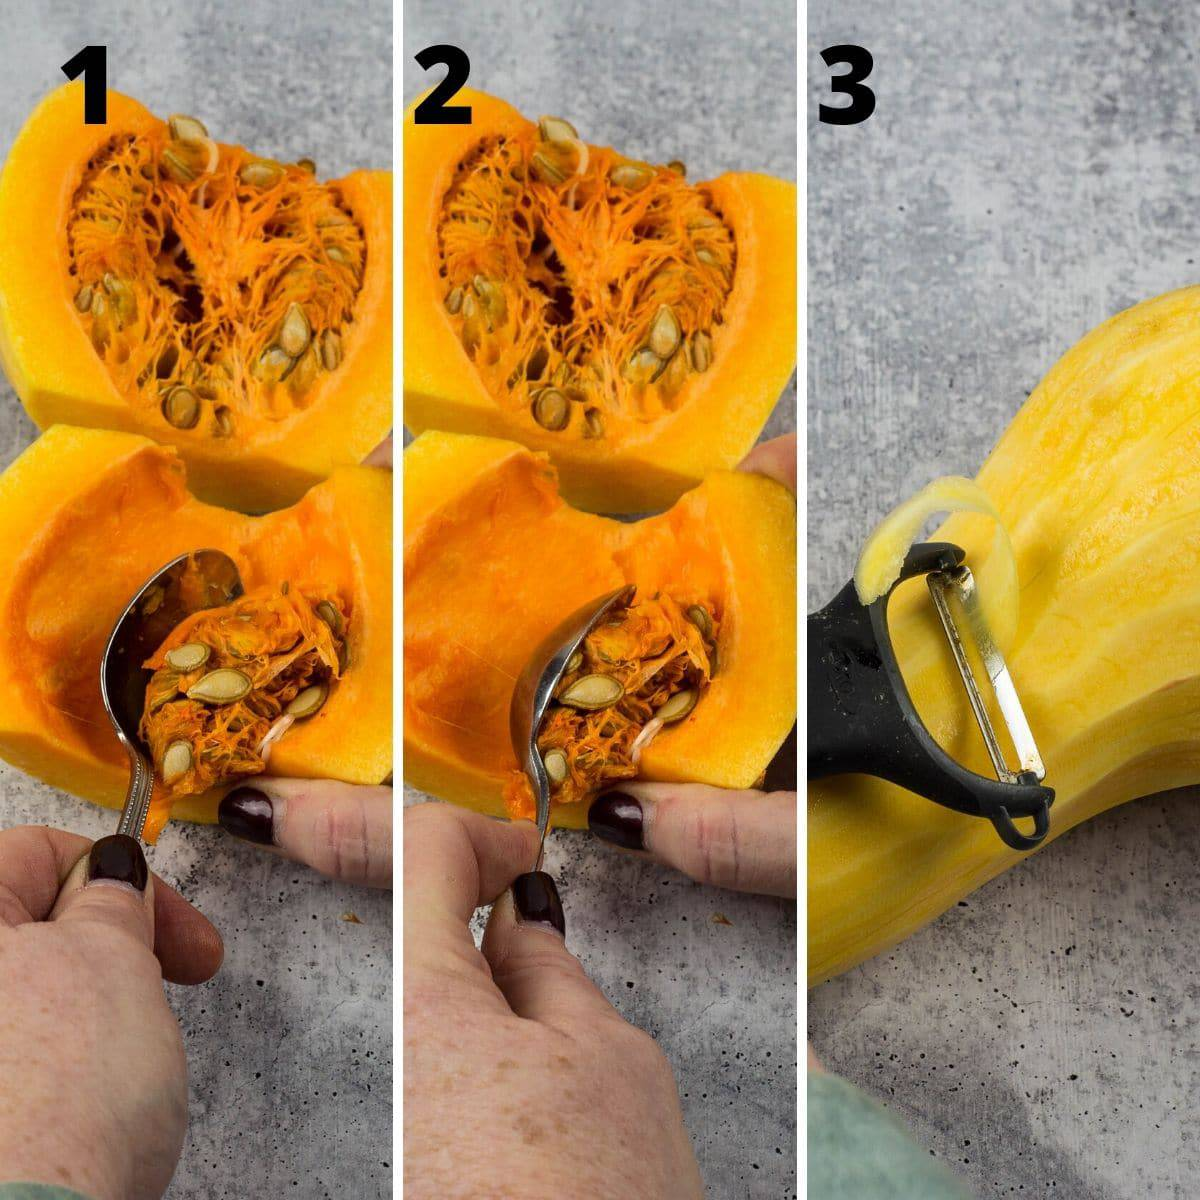 butternut squash sliced open,seeds being removed, last photo peeling squash